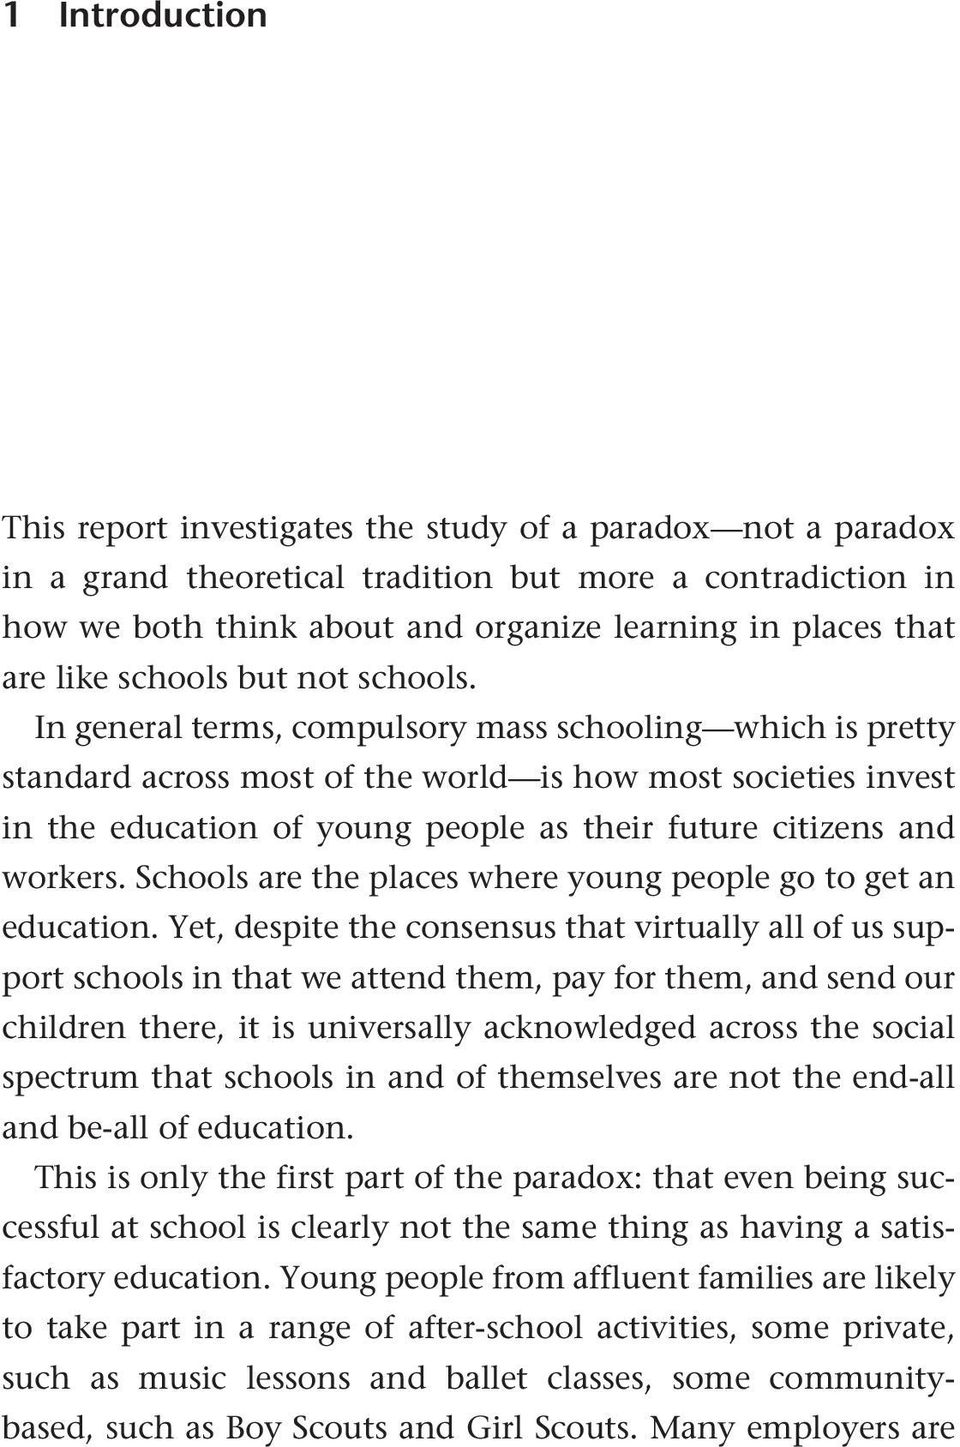 In general terms, compulsory mass schooling which is pretty standard across most of the world is how most societies invest in the education of young people as their future citizens and workers.